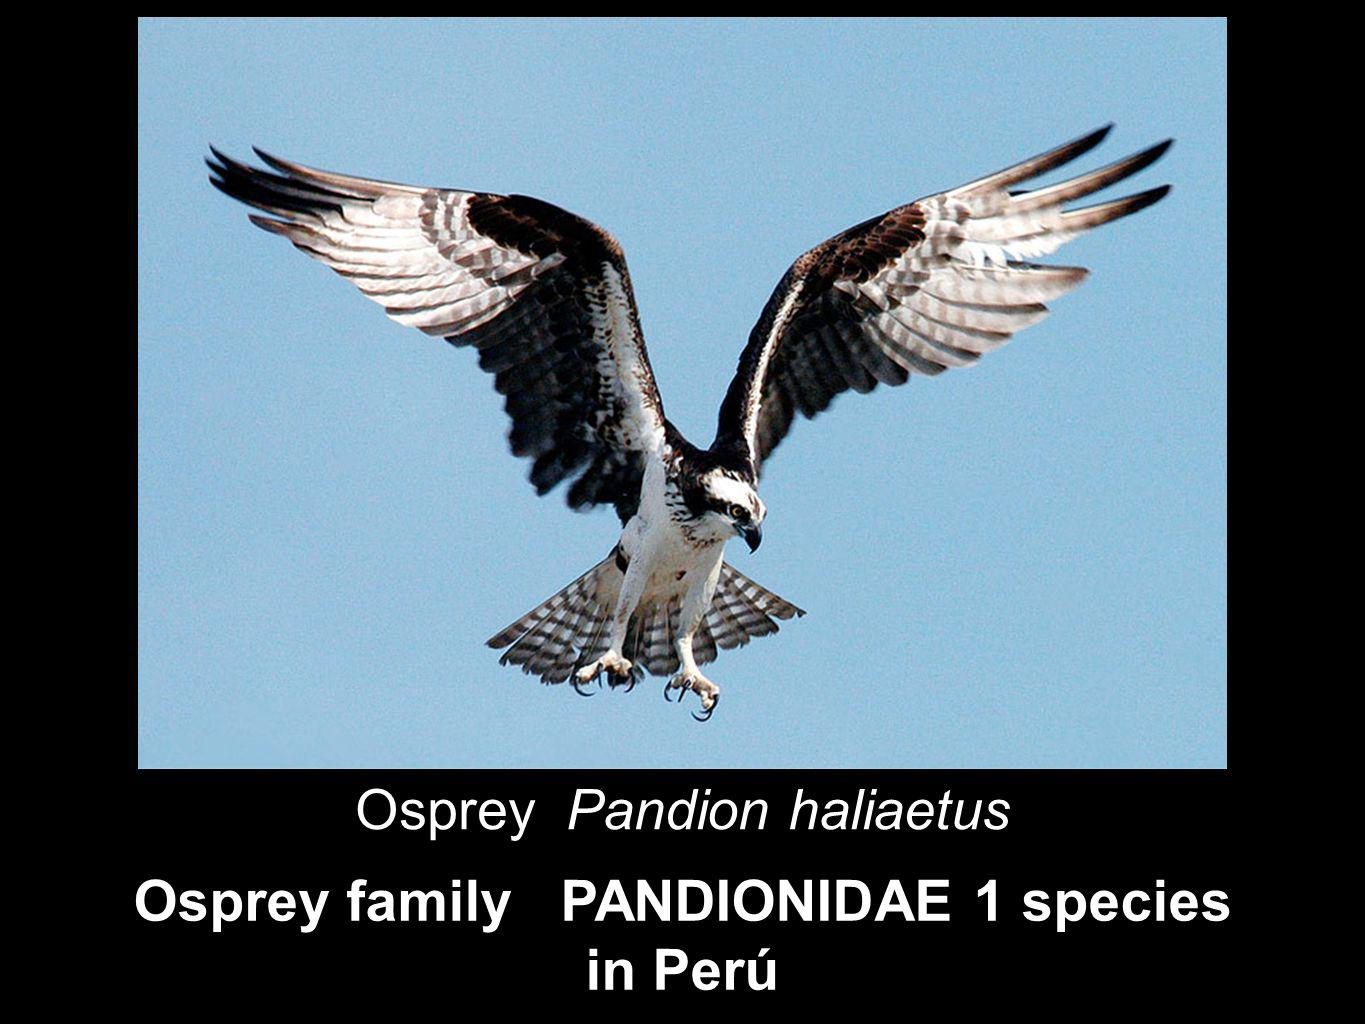 Osprey family PANDIONIDAE 1 species in Perú Osprey Pandion haliaetus